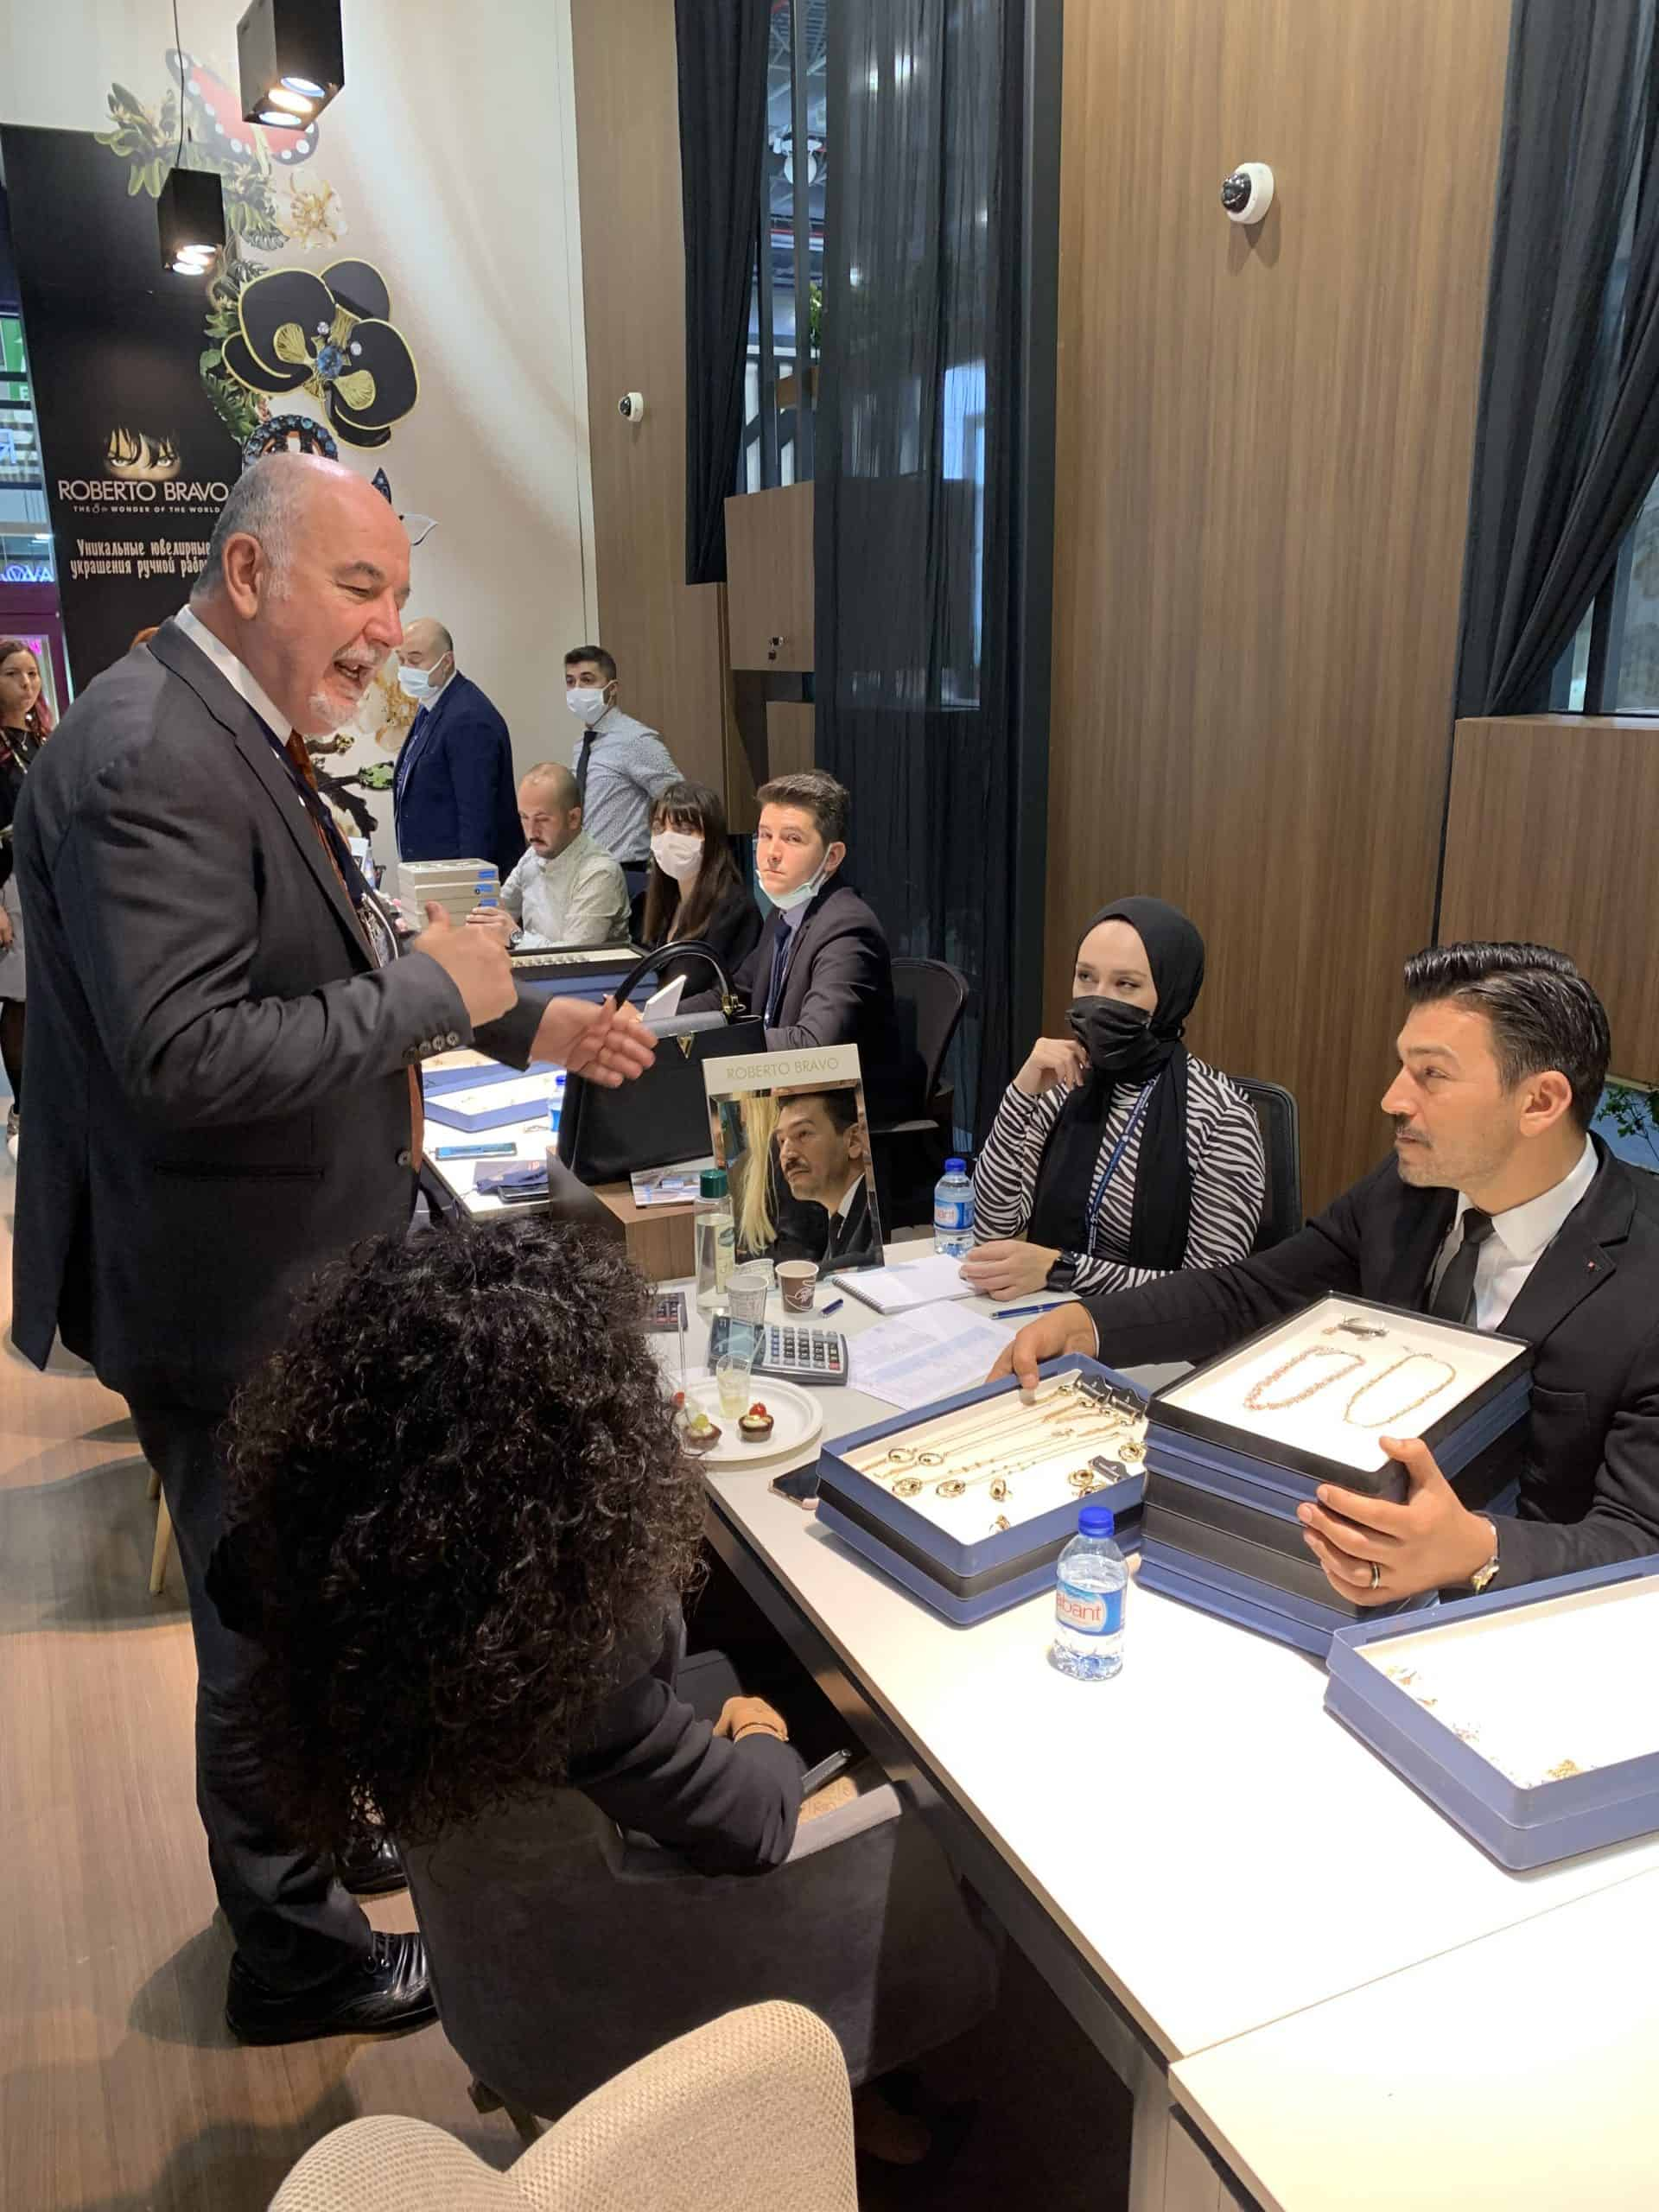 Roberto Bravo CEO Mustafa Kamar speaks with a staff member at the brand's stand at the Istanbul Jewelry Show